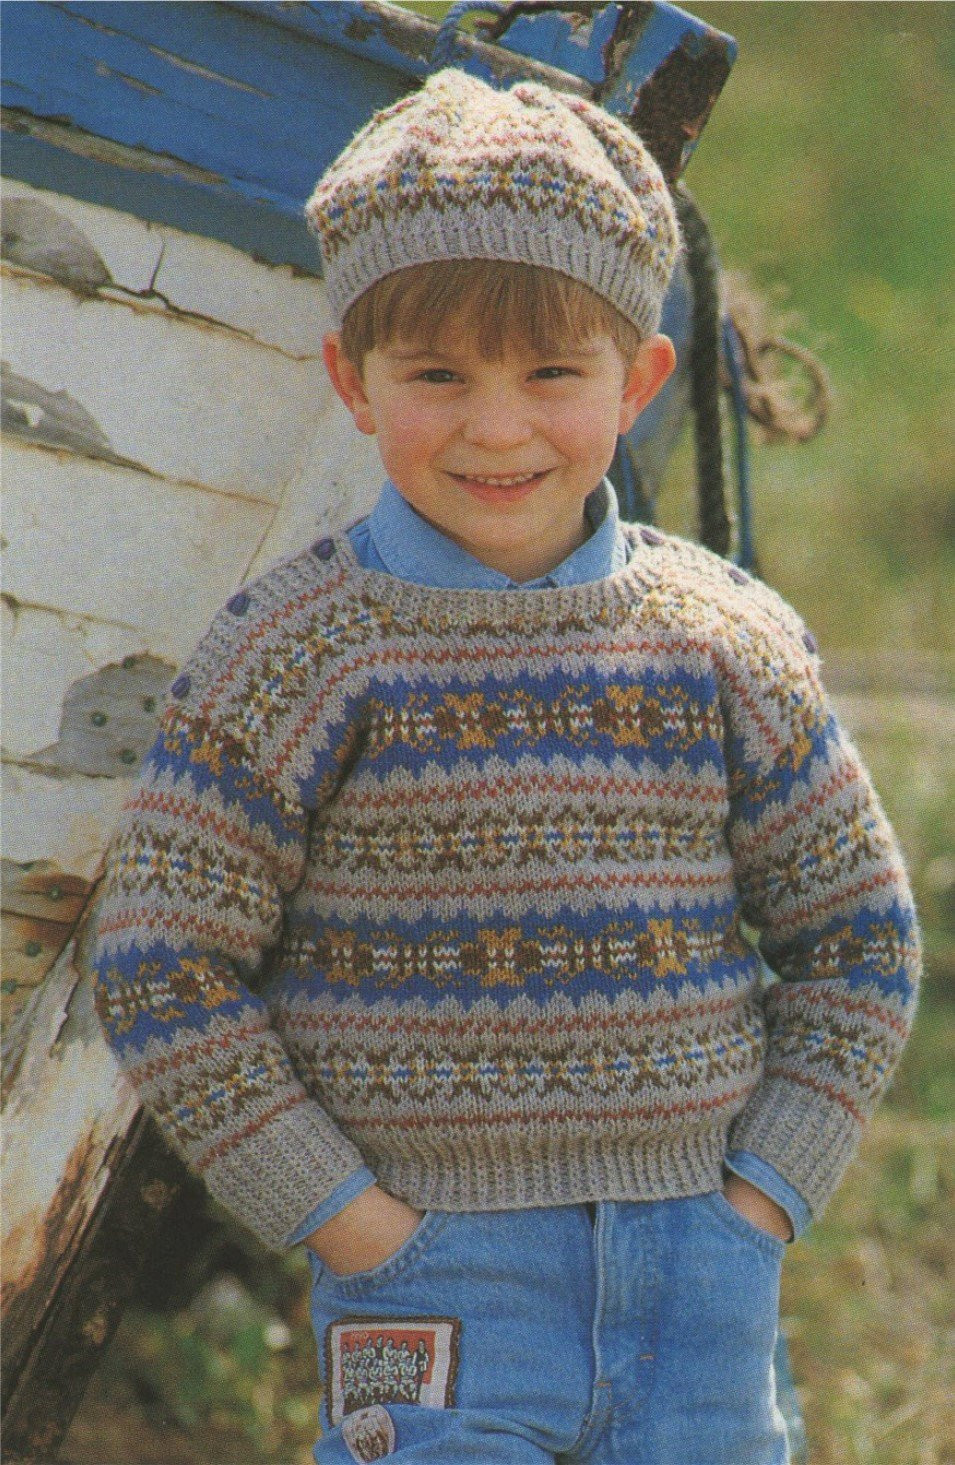 Best Of Childrens Fair isle Sweater and Beret Knitting Pattern Fair isle Sweater Pattern Of Amazing 44 Ideas Fair isle Sweater Pattern